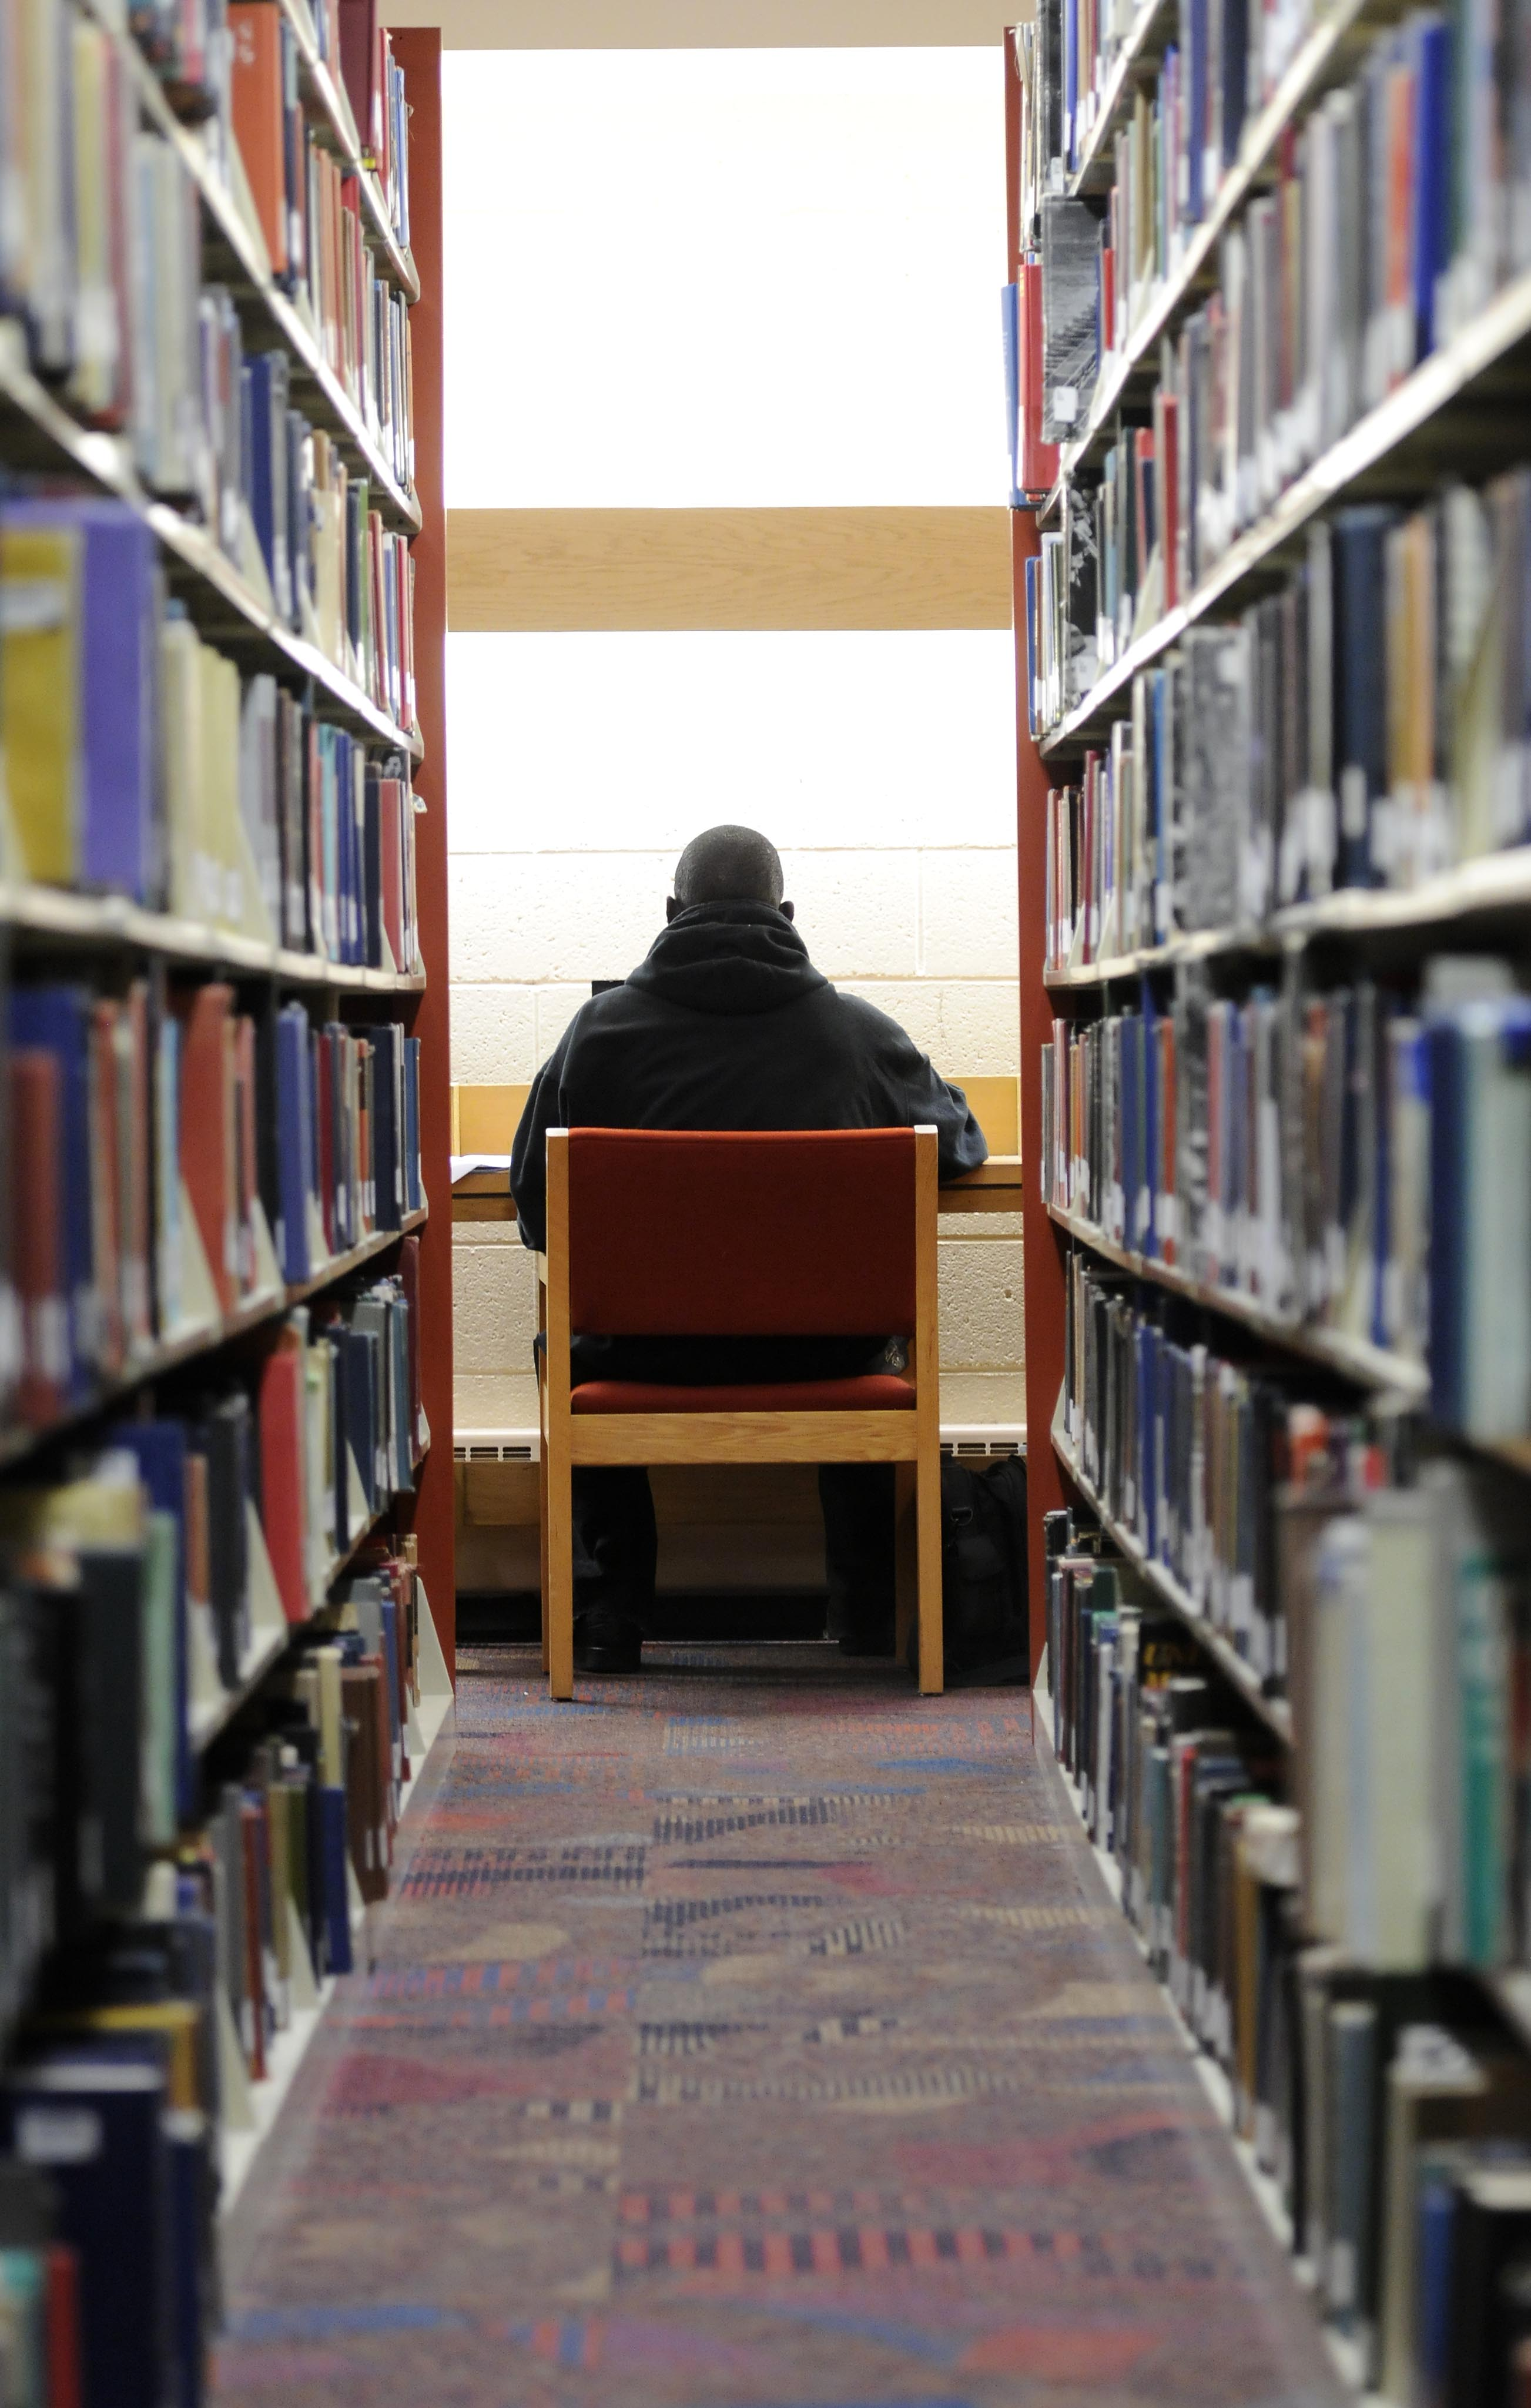 The back of a library user working at a table in the library stacks.